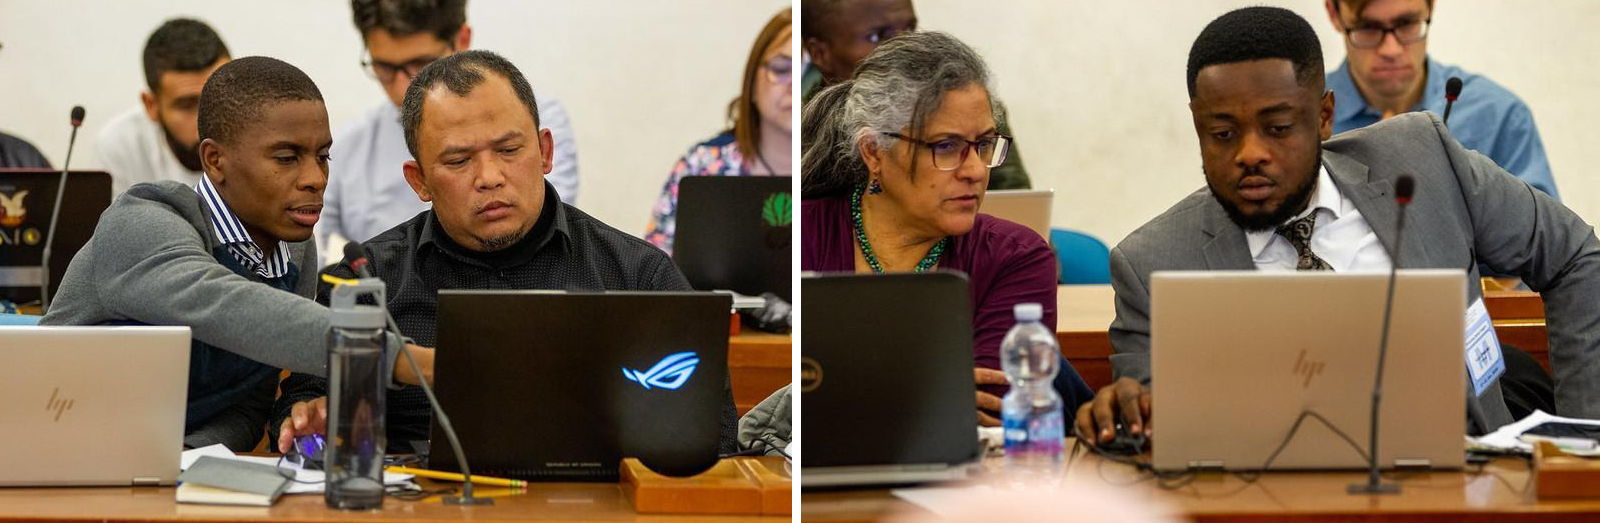 Countries working with Planet data in FAO's SEPAL platform cross-share their lessons and approaches to leveraging high-resolution imagery for improved forest and land use monitoring. Mozambique shares workflows with Indonesia (left) while Ghana shares insights with Mexico (right). Source: FAO.